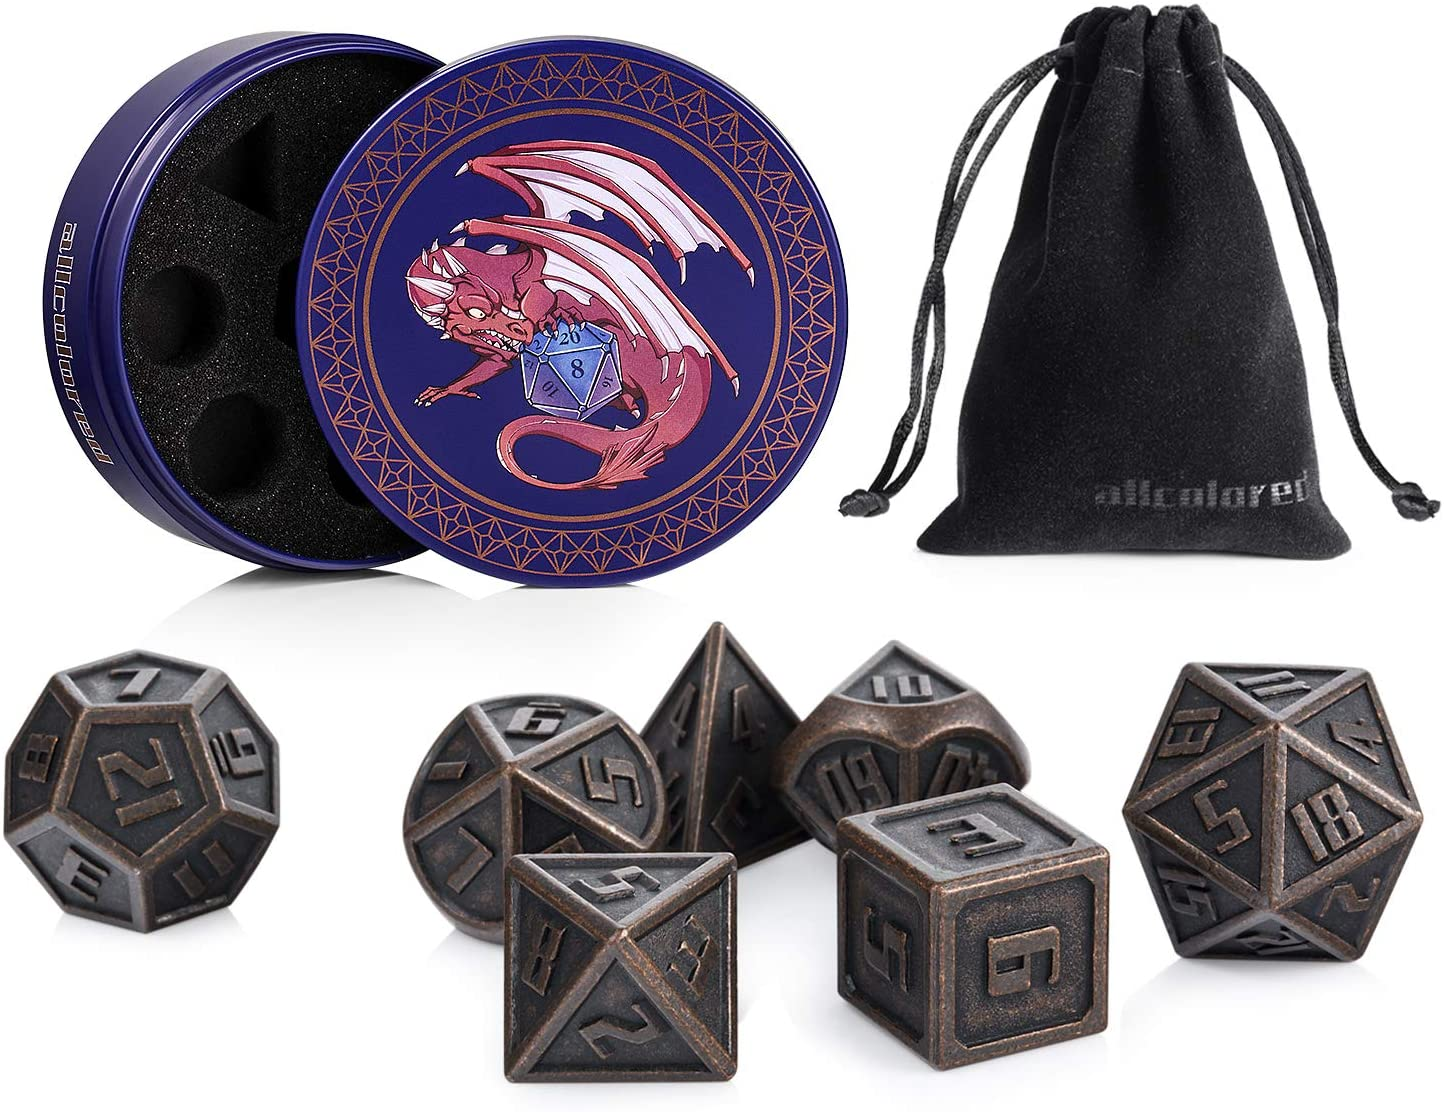 ALLCOLORED 7PCS Standard 16mm Metal DND Dice Set Ancient Copper D&D Polyhedral Dice Metal Tin and Velvet Bag for Playing Tabletop Roleplay Games Dungeons and Dragons